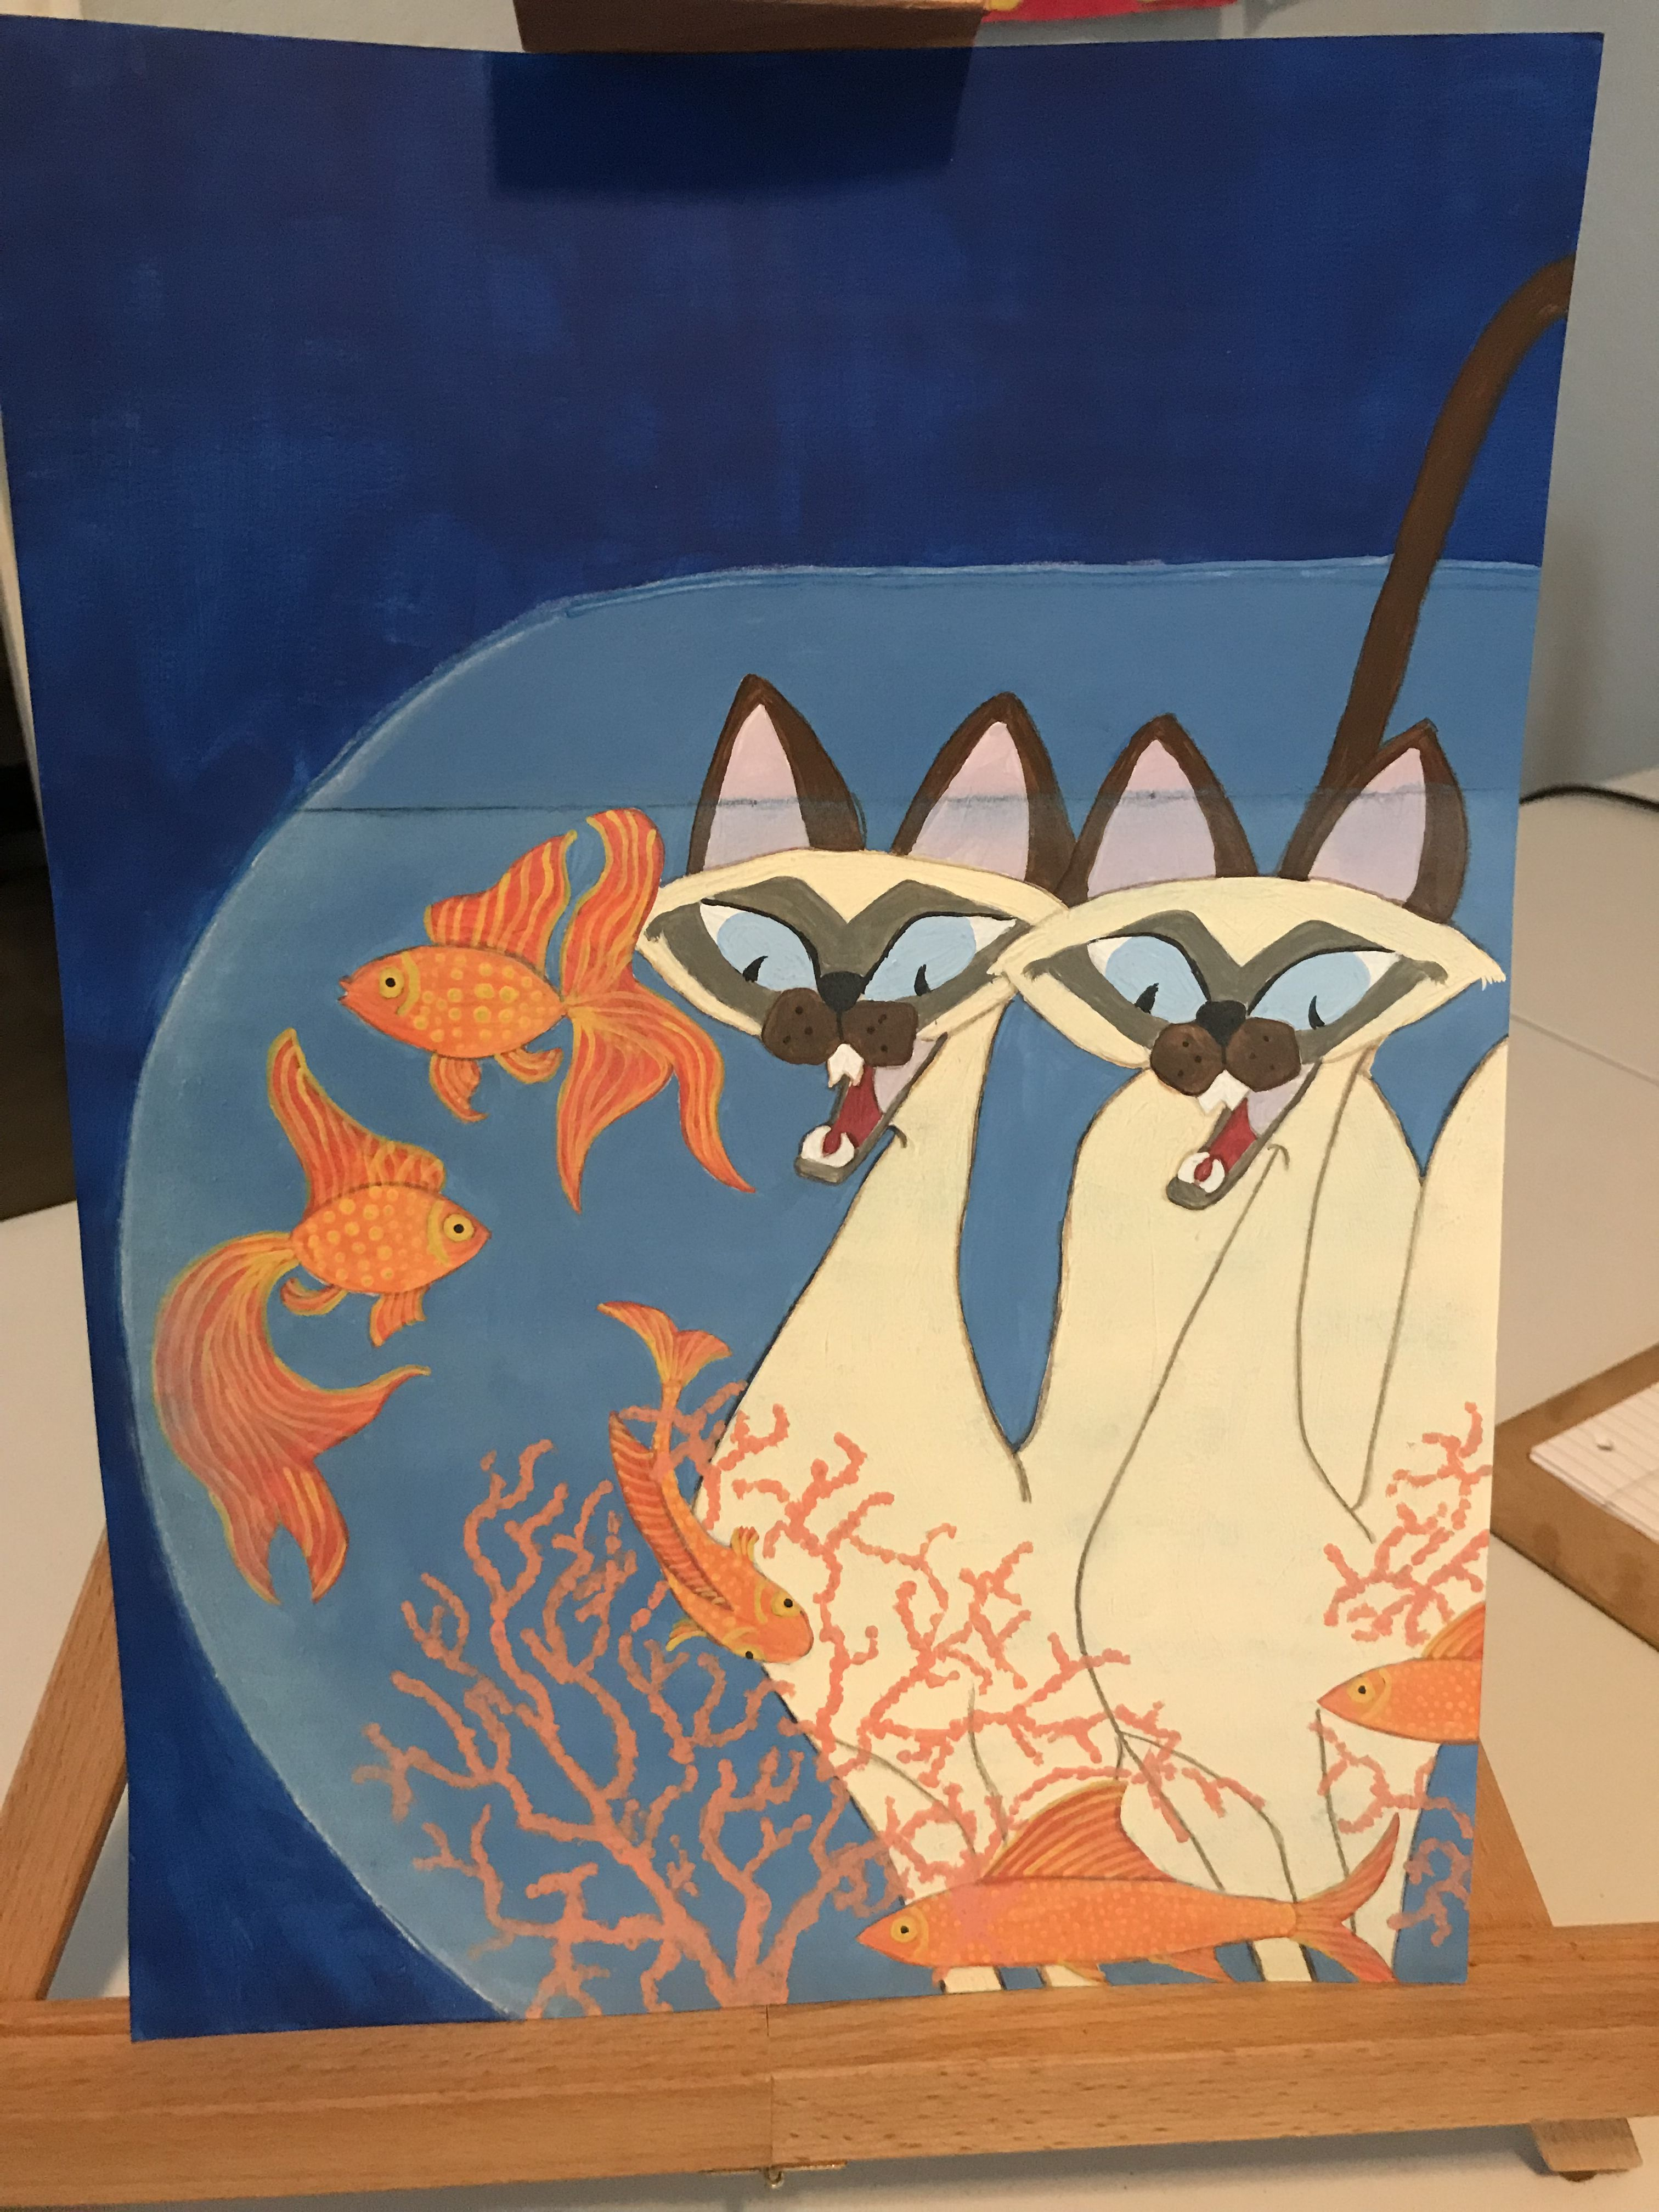 A Mashup Of Disney S Siamese Cats From Lady And The Tramp And